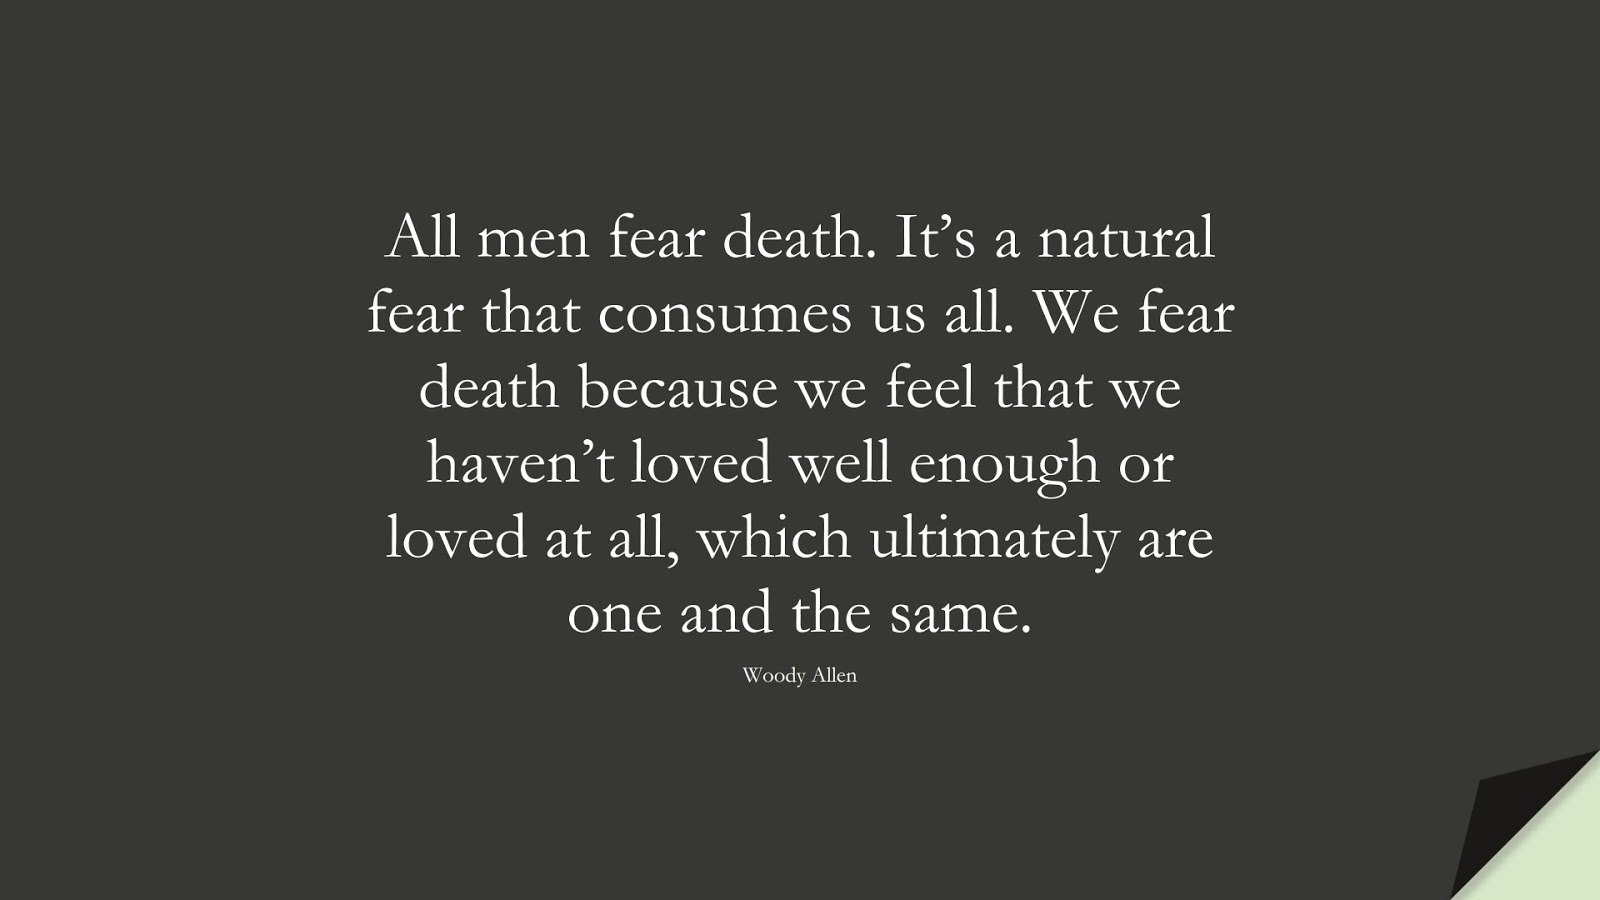 All men fear death. It's a natural fear that consumes us all. We fear death because we feel that we haven't loved well enough or loved at all, which ultimately are one and the same. (Woody Allen);  #FearQuotes